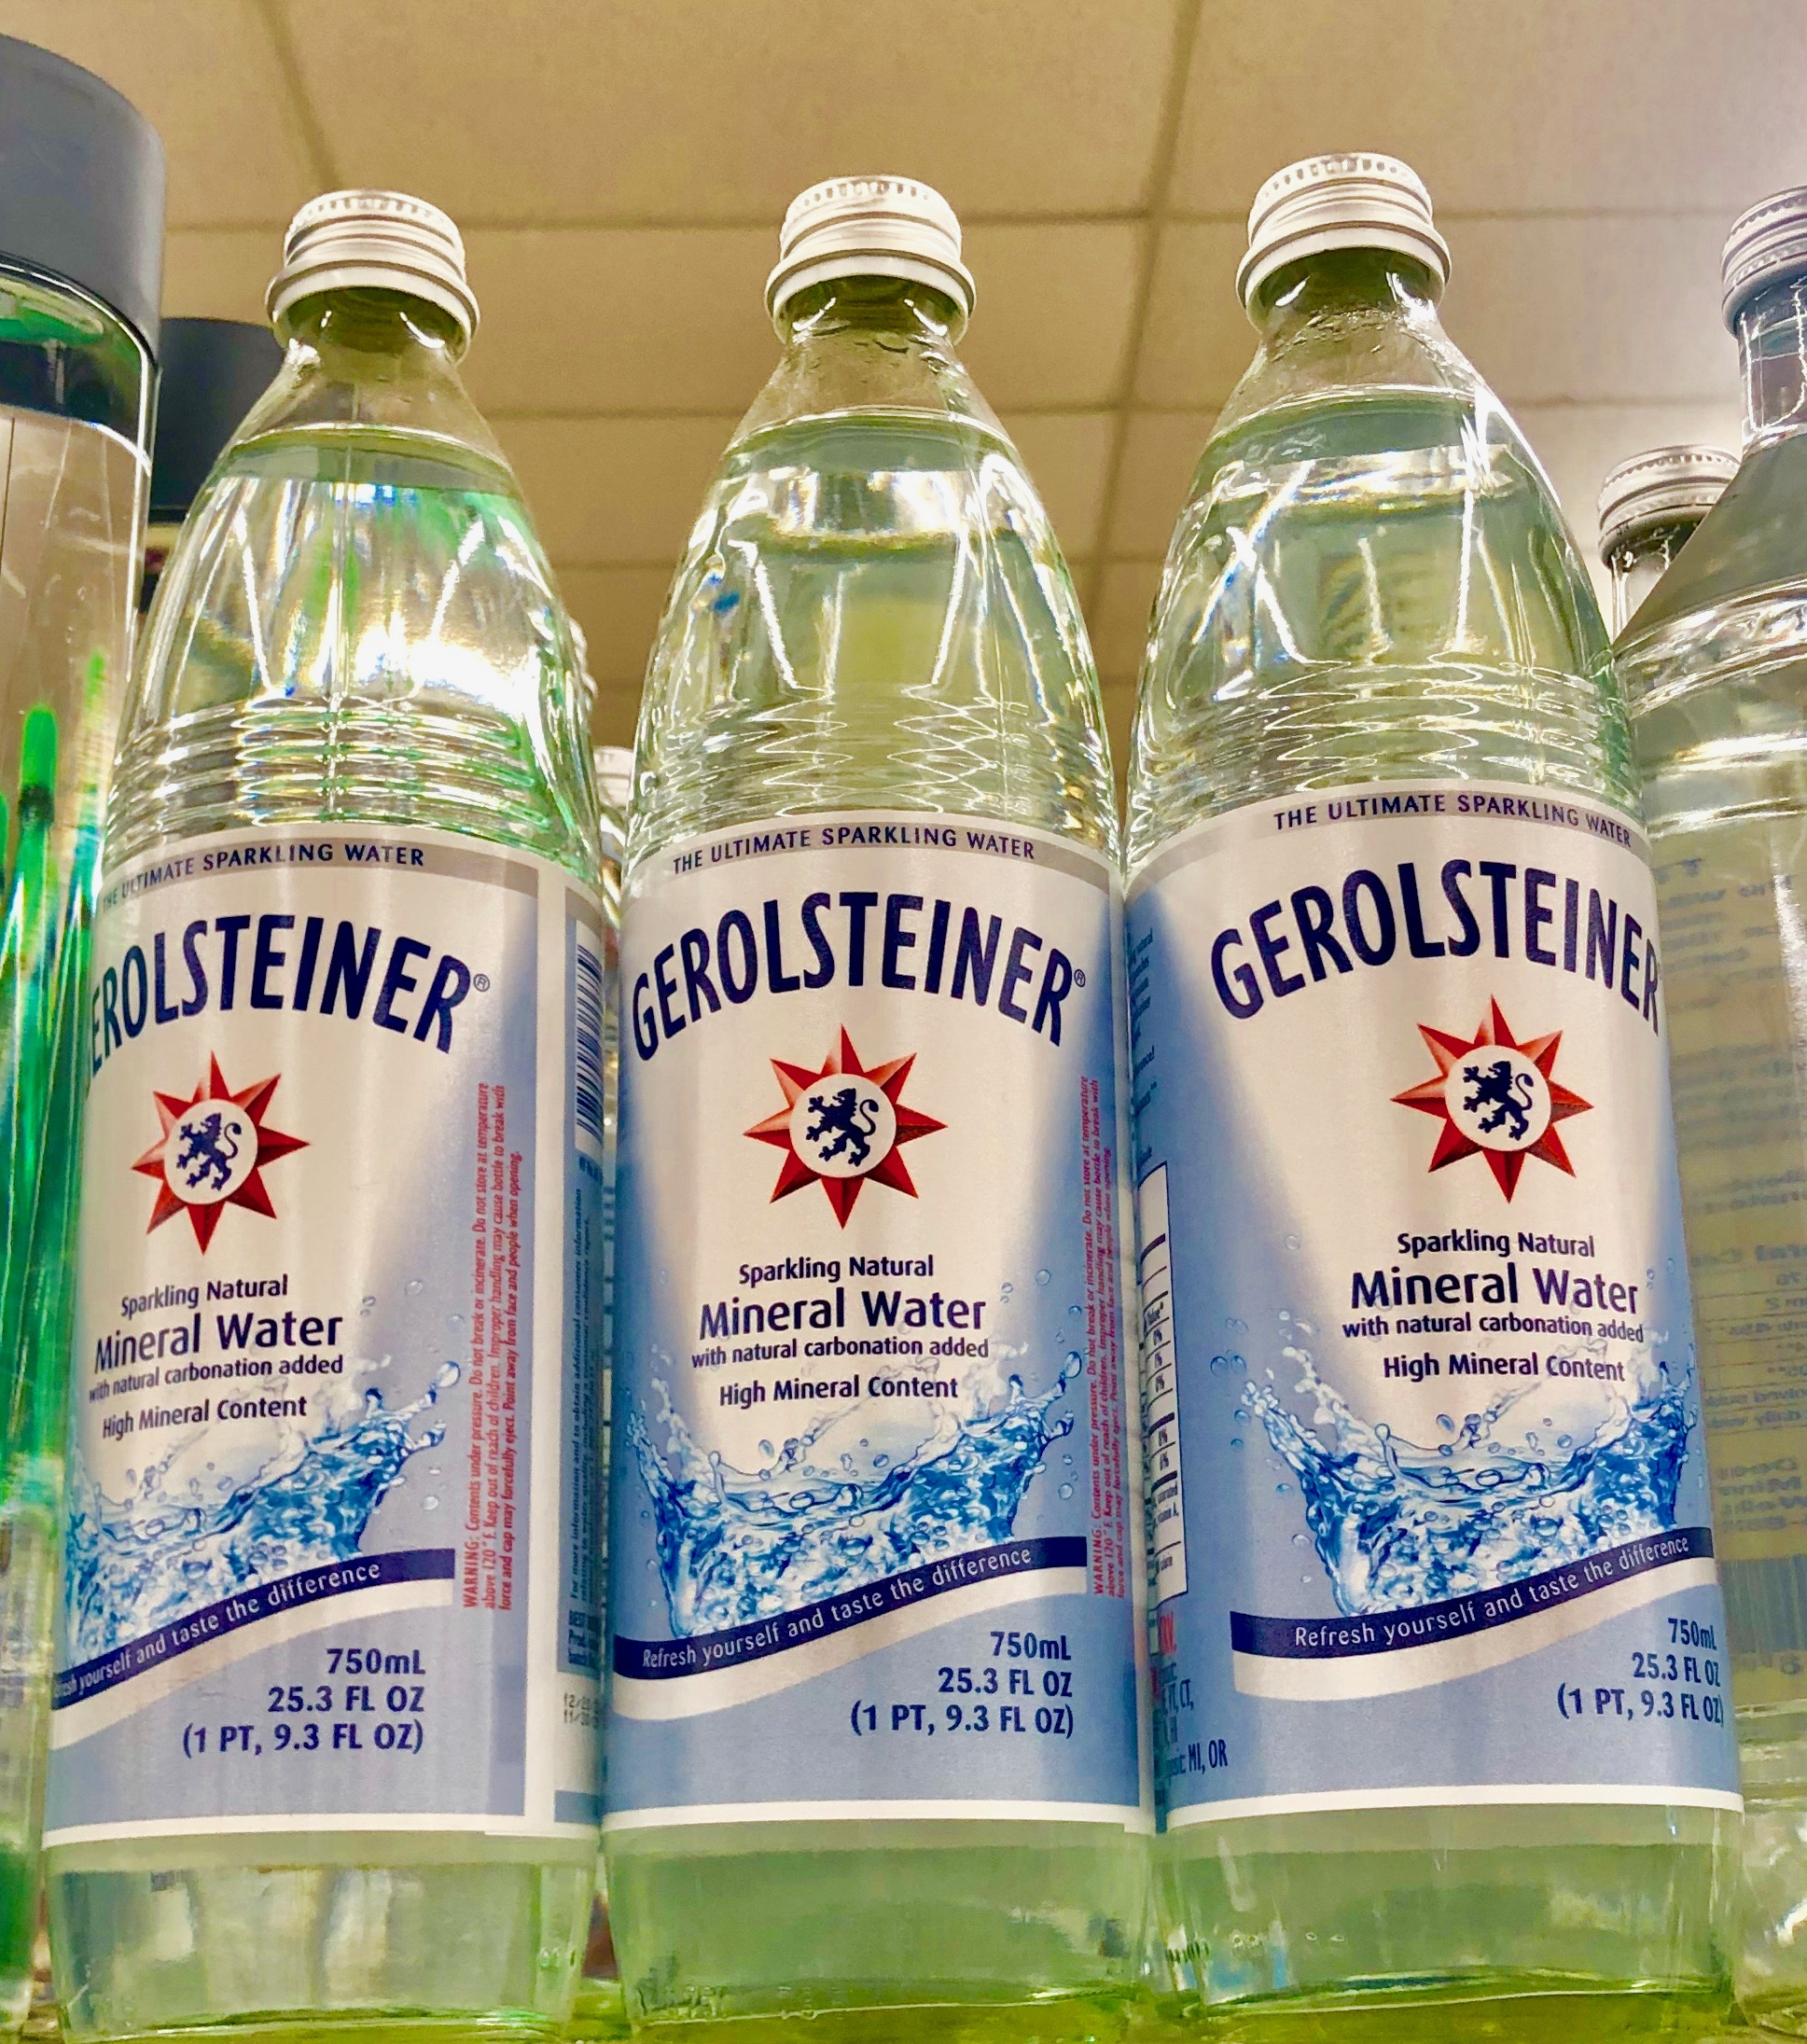 Some bottled waters contain a high mineral content